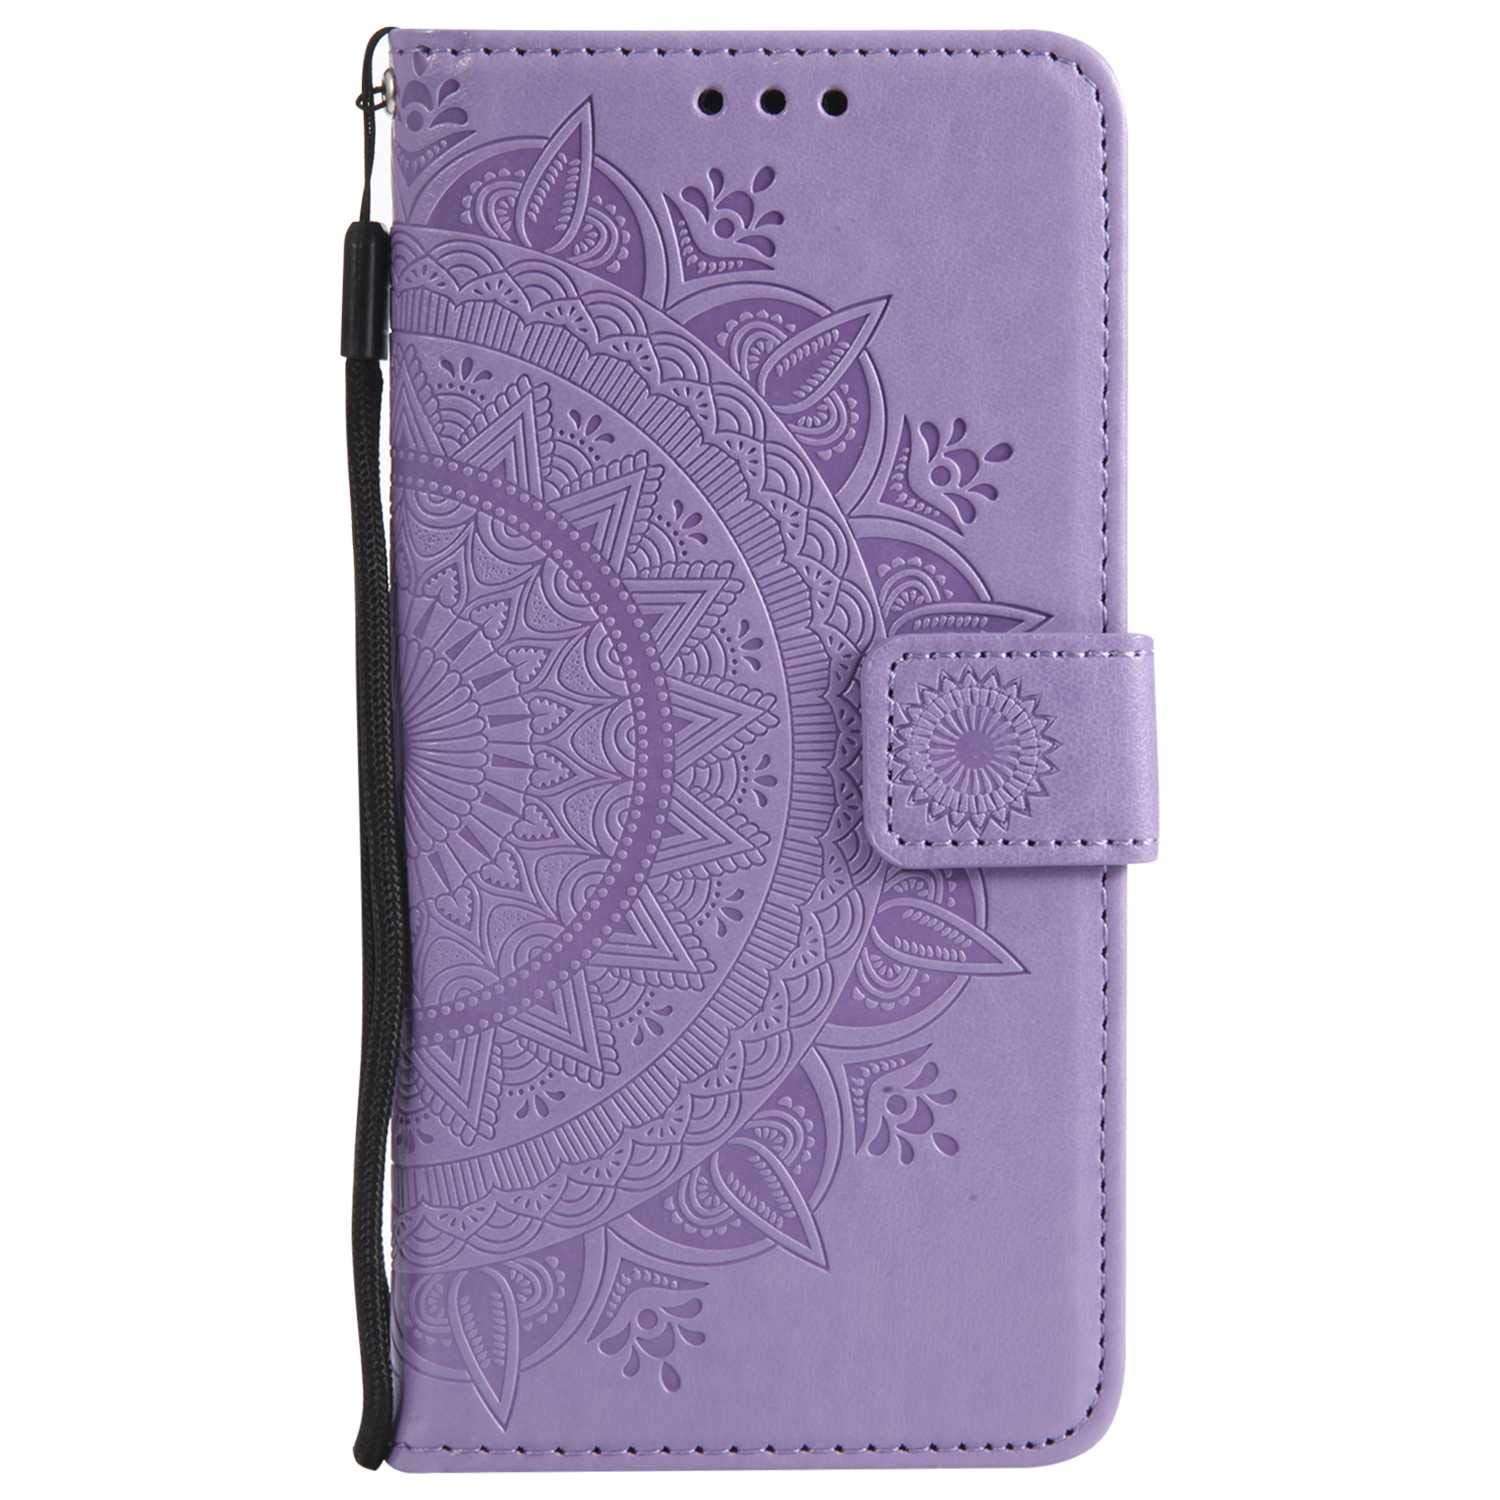 iPhone 7 8 Case, The Grafu Leather Case, Premium Wallet Case with [Card Slots] [Kickstand Function] Flip Notebook Cover for Apple iPhone 7/8, Purple